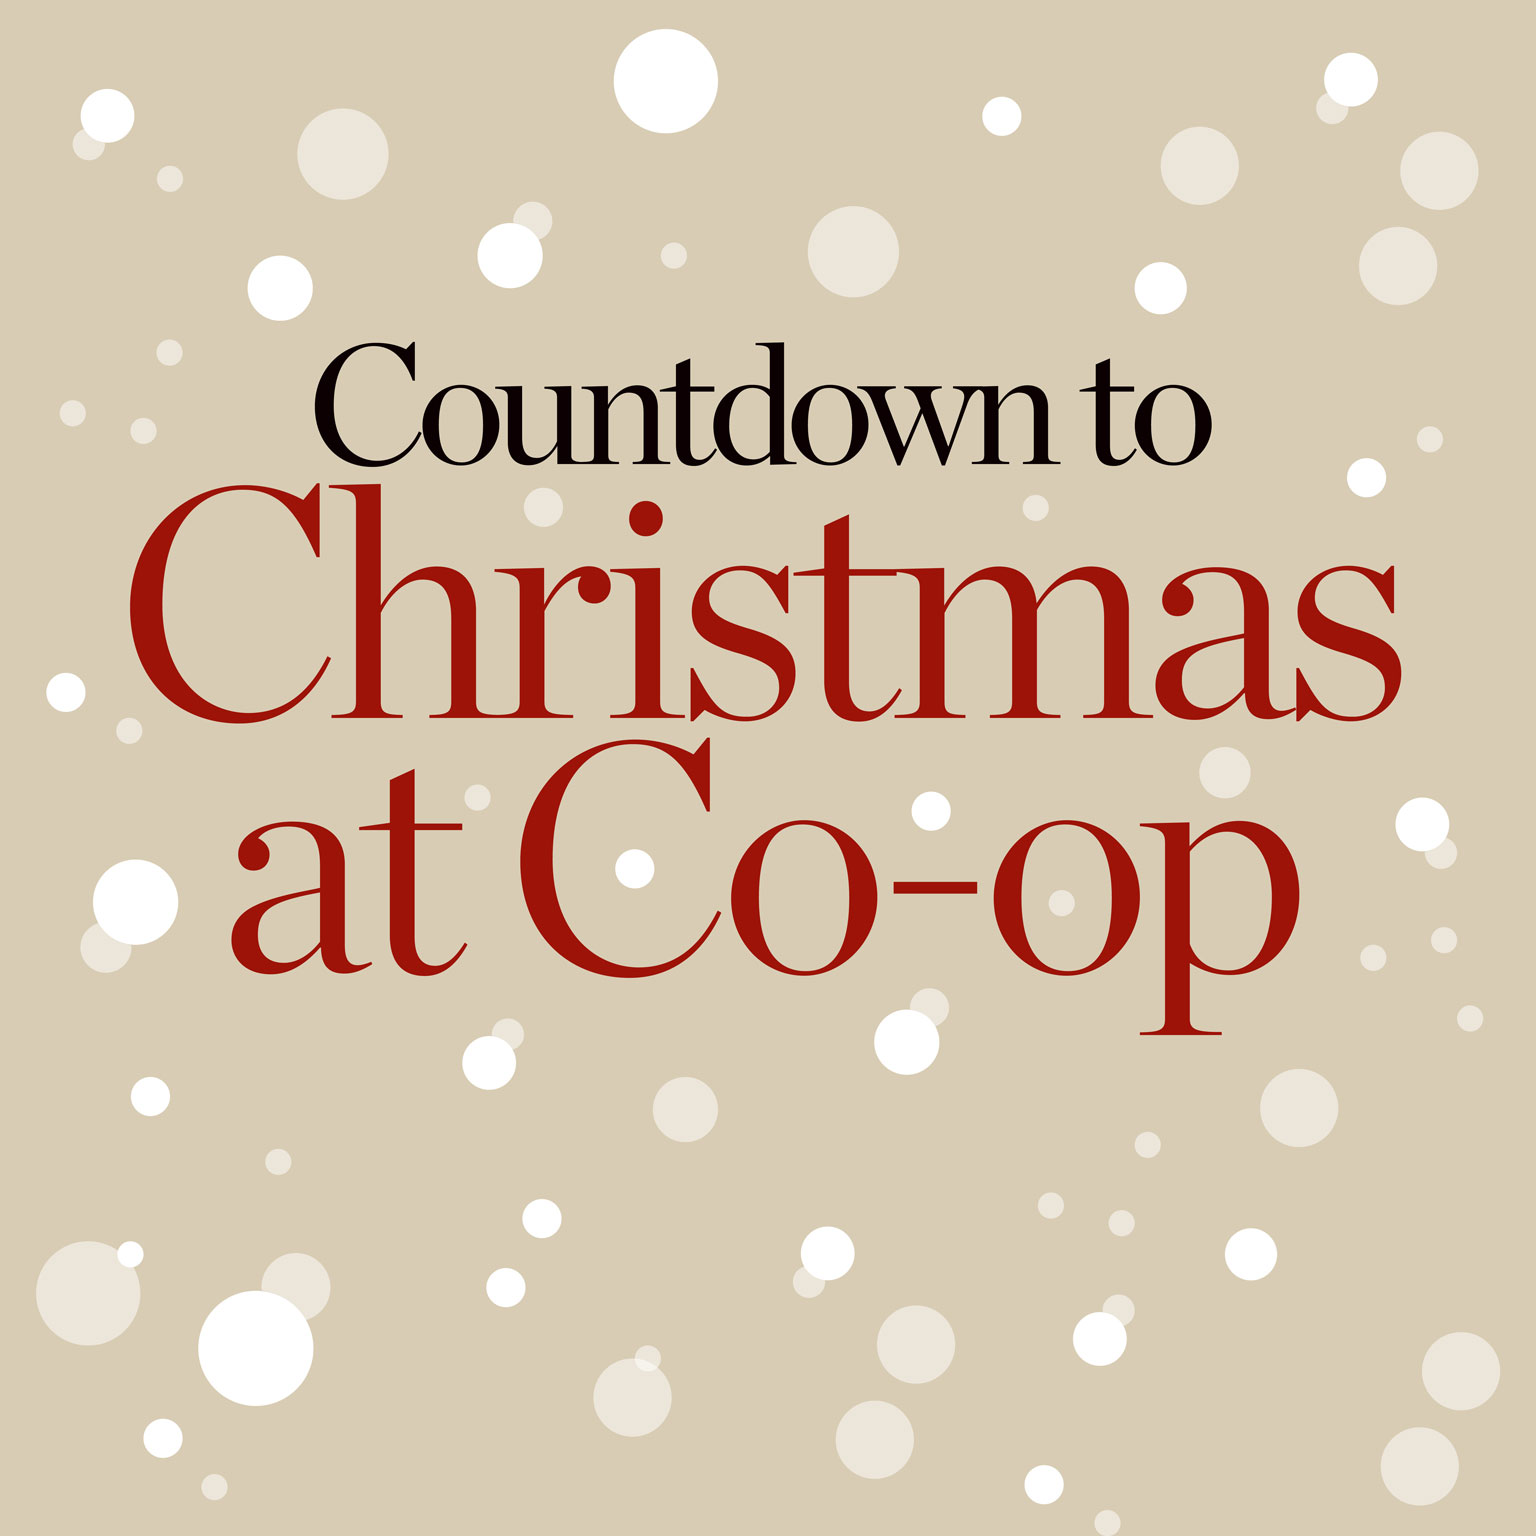 Christmas at Co-op